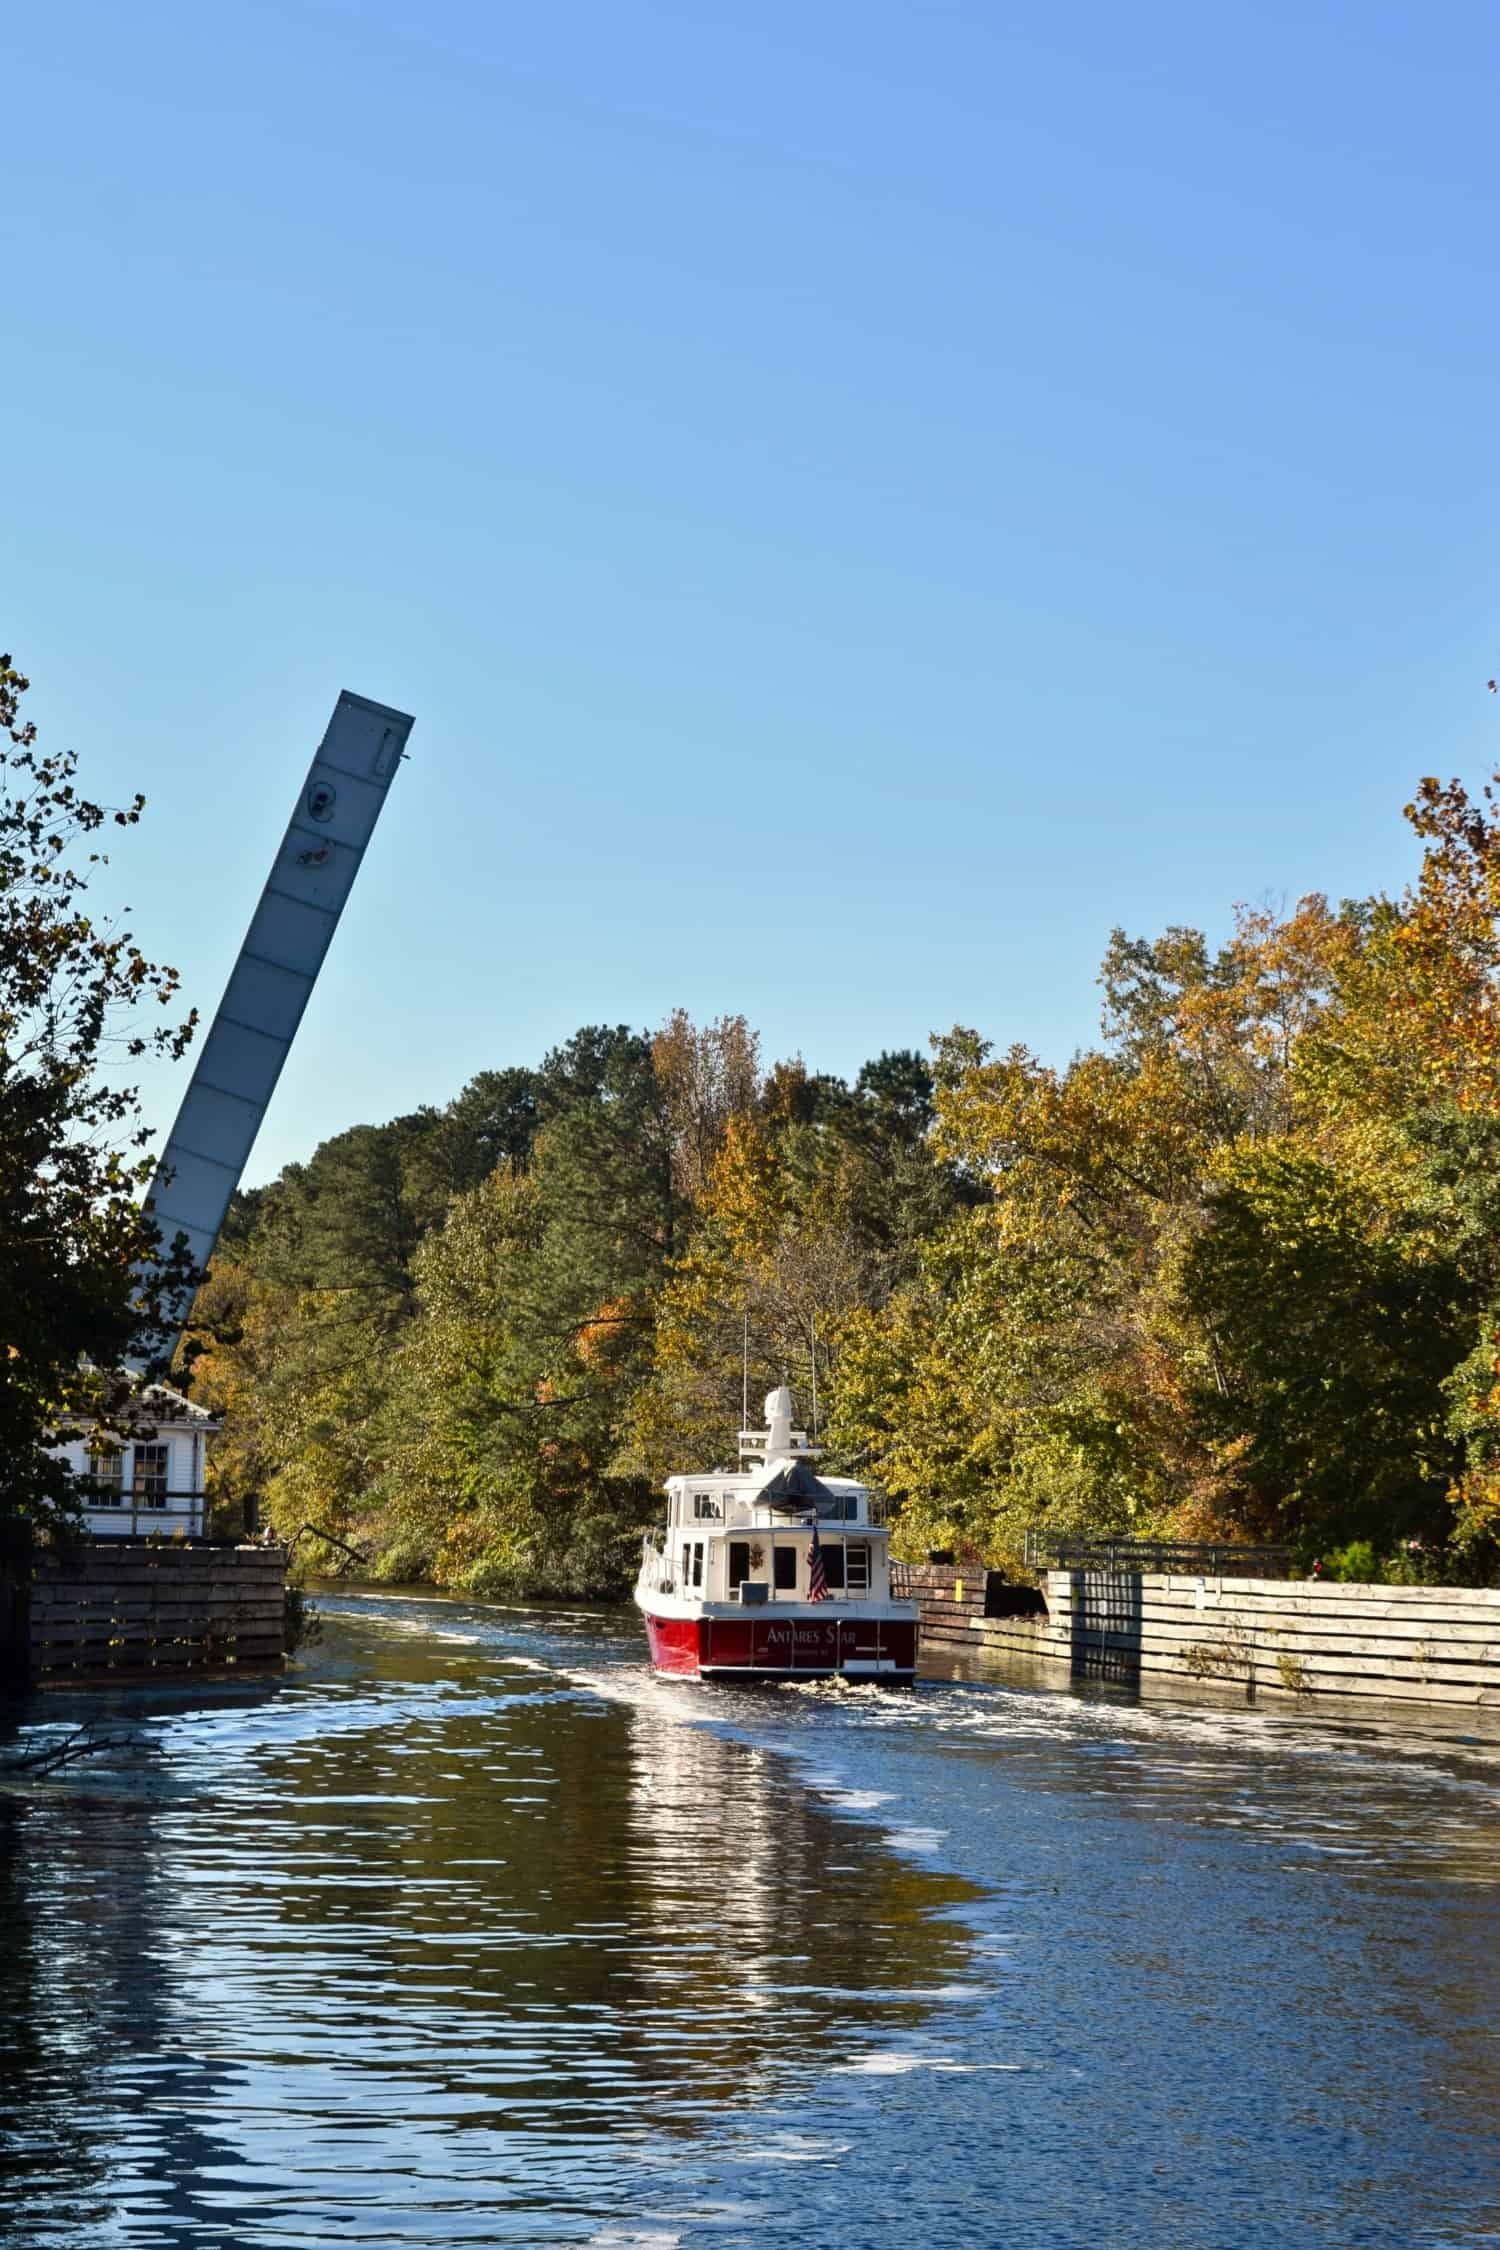 Red and white boat passing through the Bascule Bridge in the Great Dismal Swamp